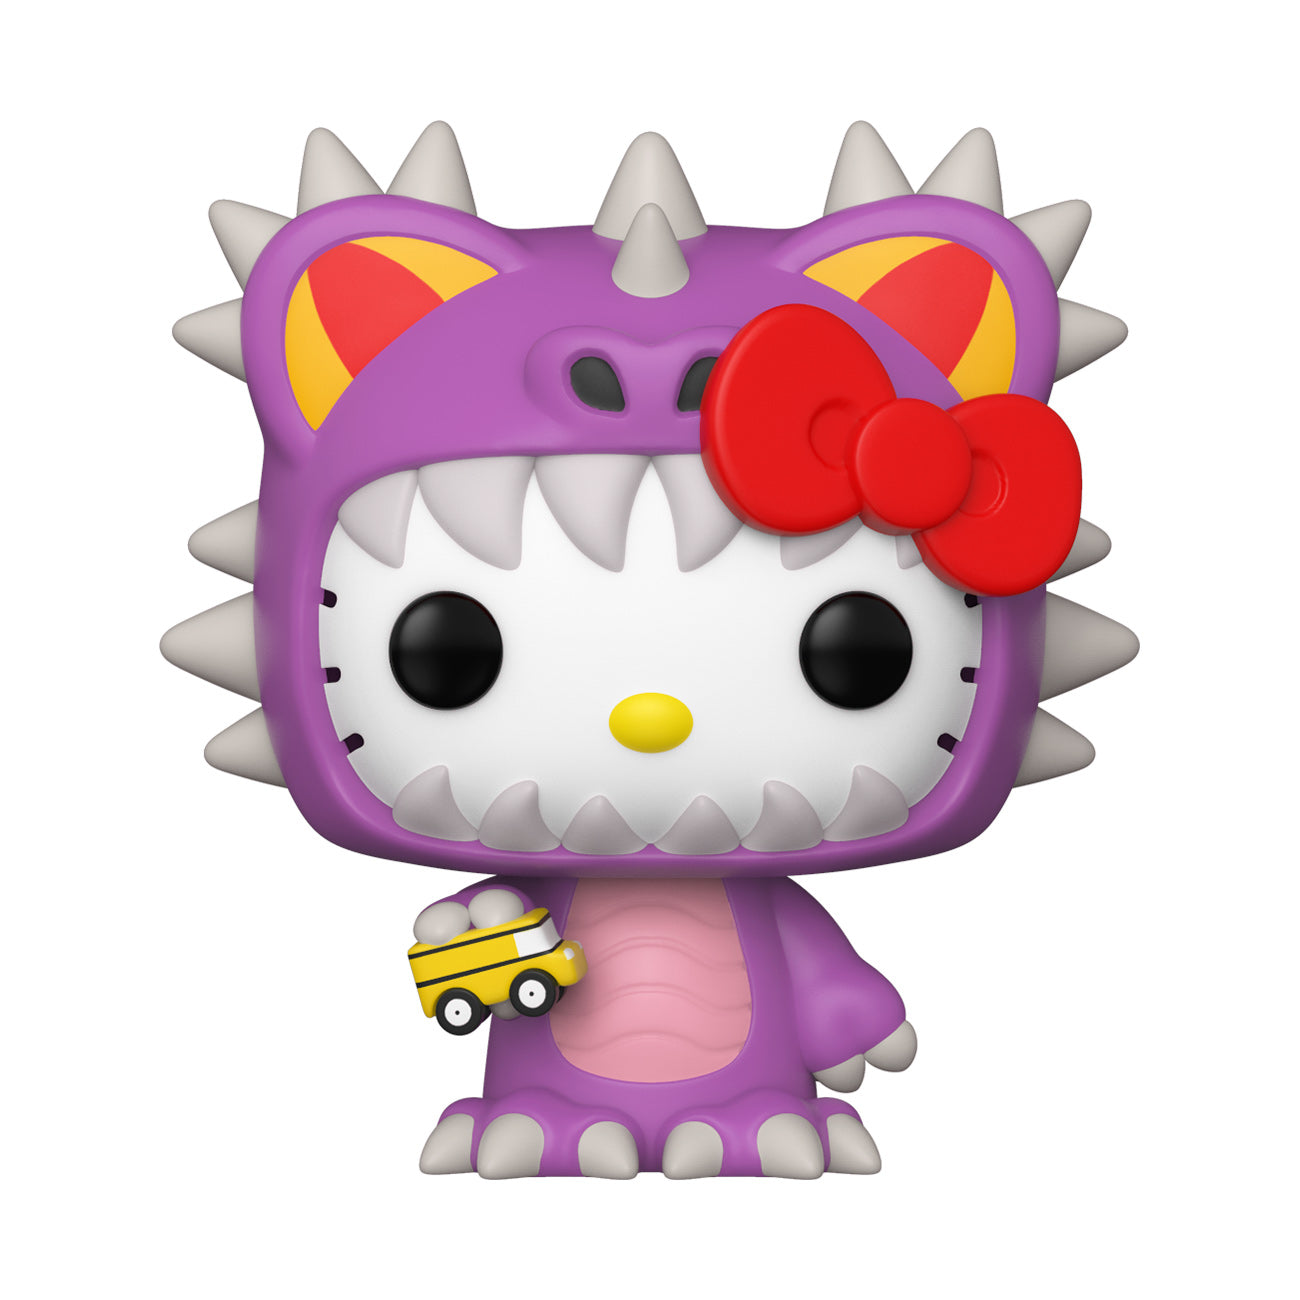 Sanrio Hello Kitty x Kaiju Land Kaiju (October Preorder)